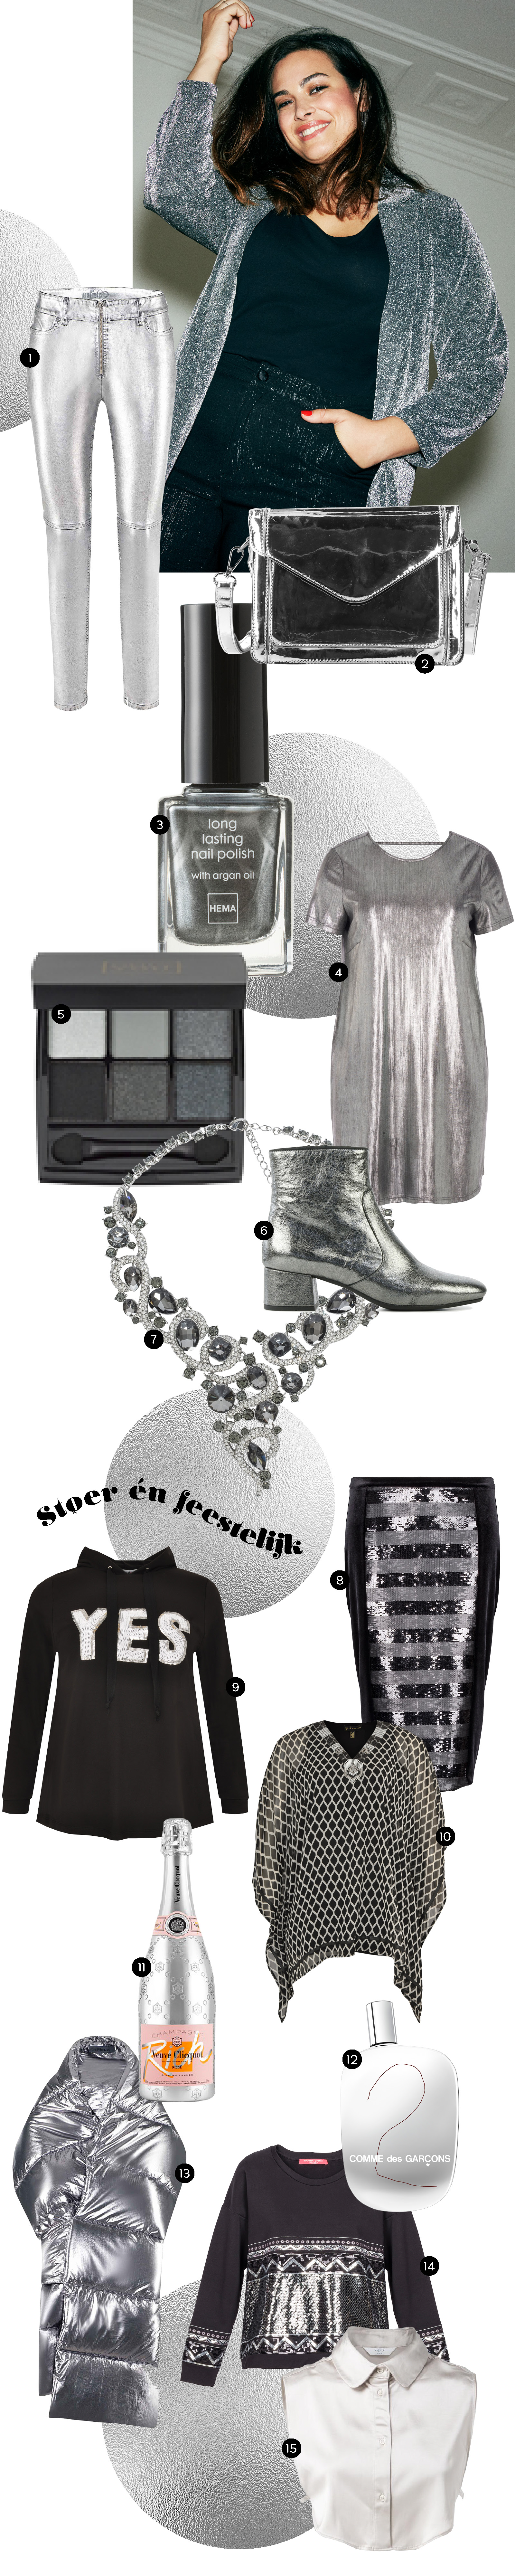 Beautyvol - shopping - zilver - Christmas